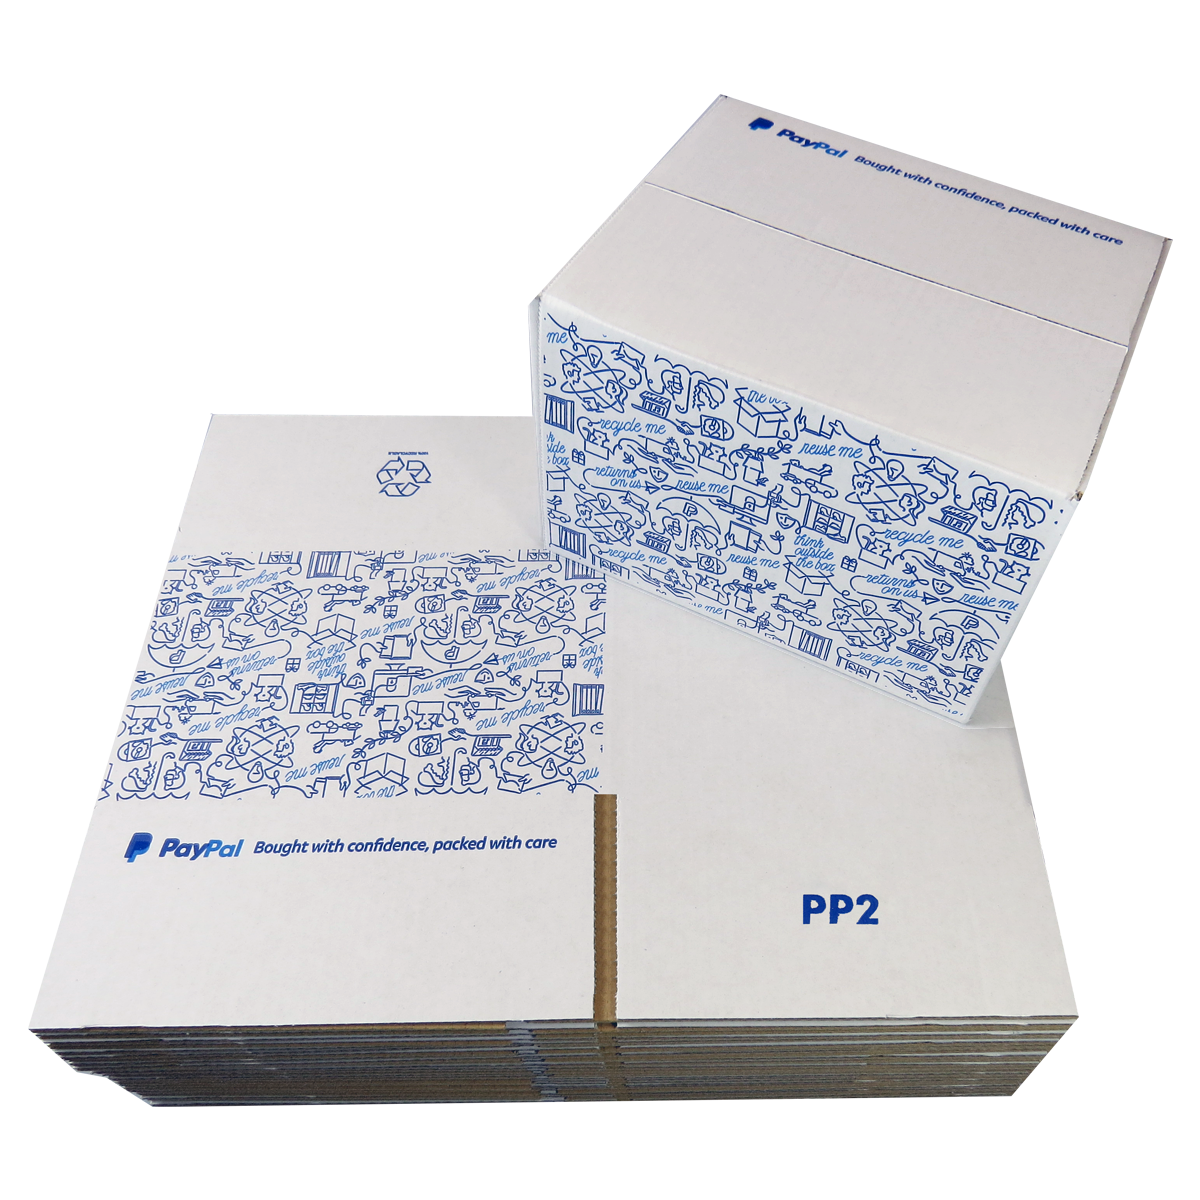 200 x PP2 PayPal Branded Quality White Single Wall Cardboard Postal Mailing Boxes 215x180x135mm